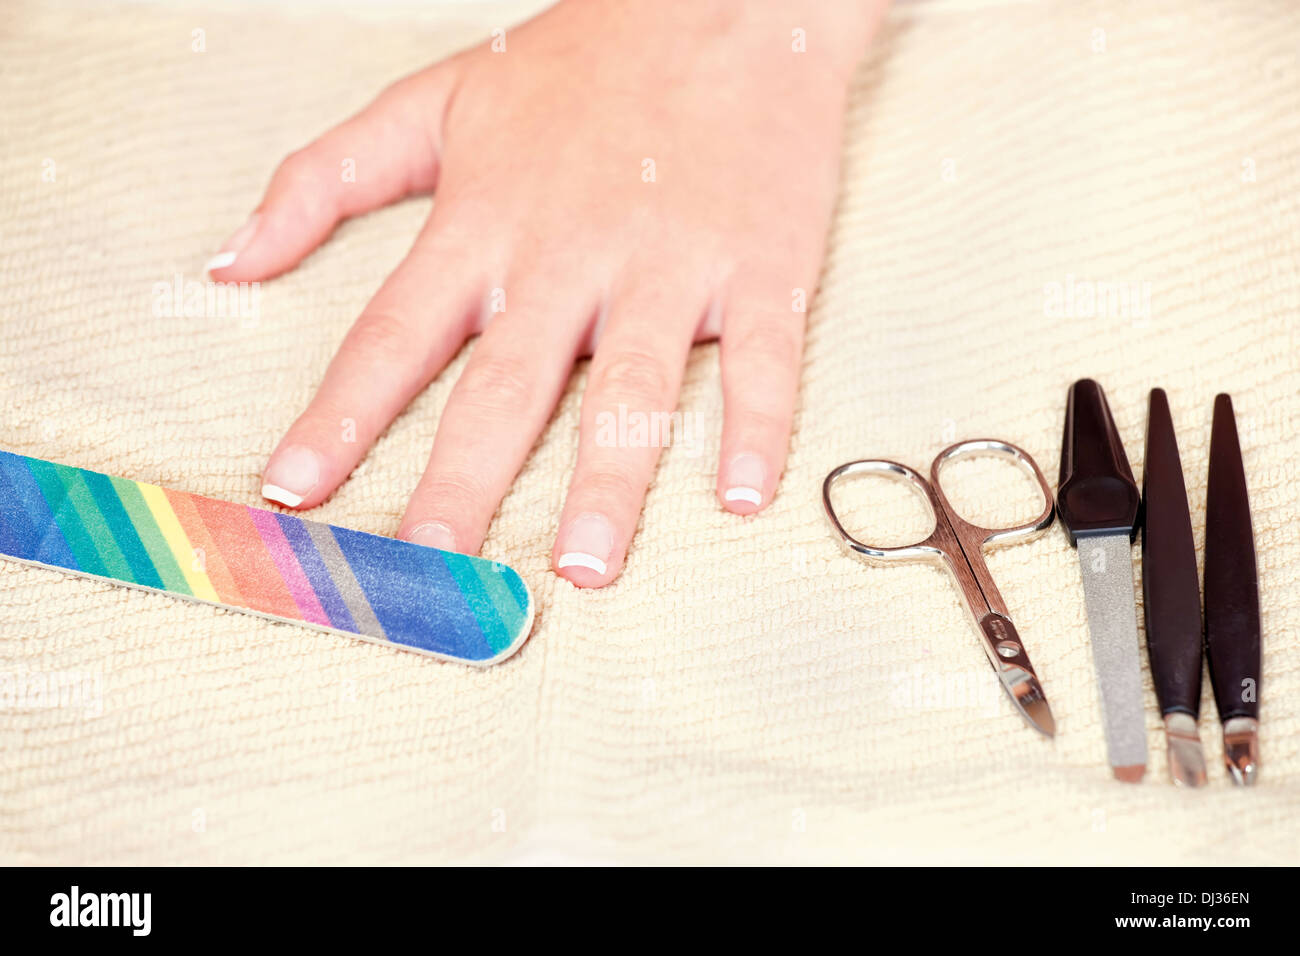 Nails beauty treatment with nail file - Stock Image